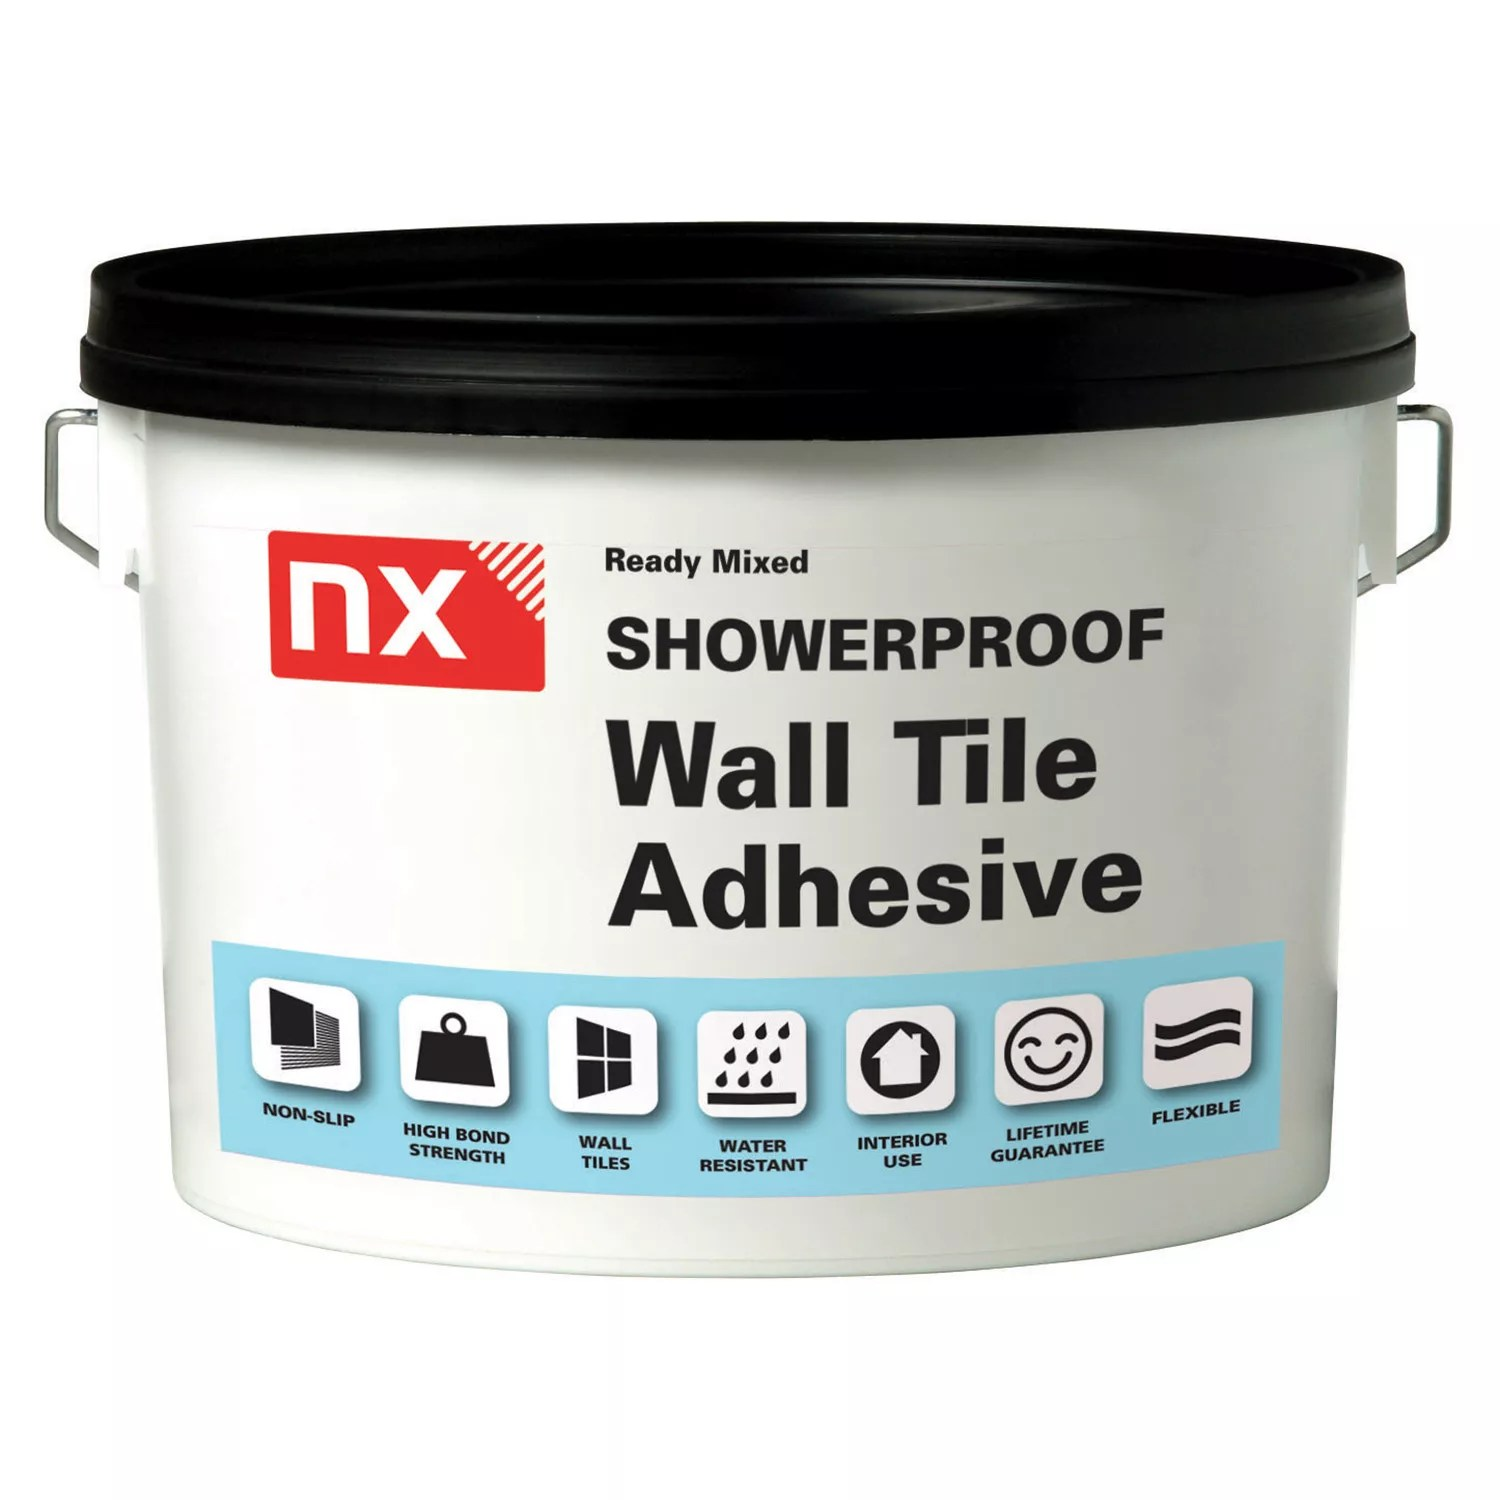 nx showerproof ready mixed bright white tile adhesive 15kg